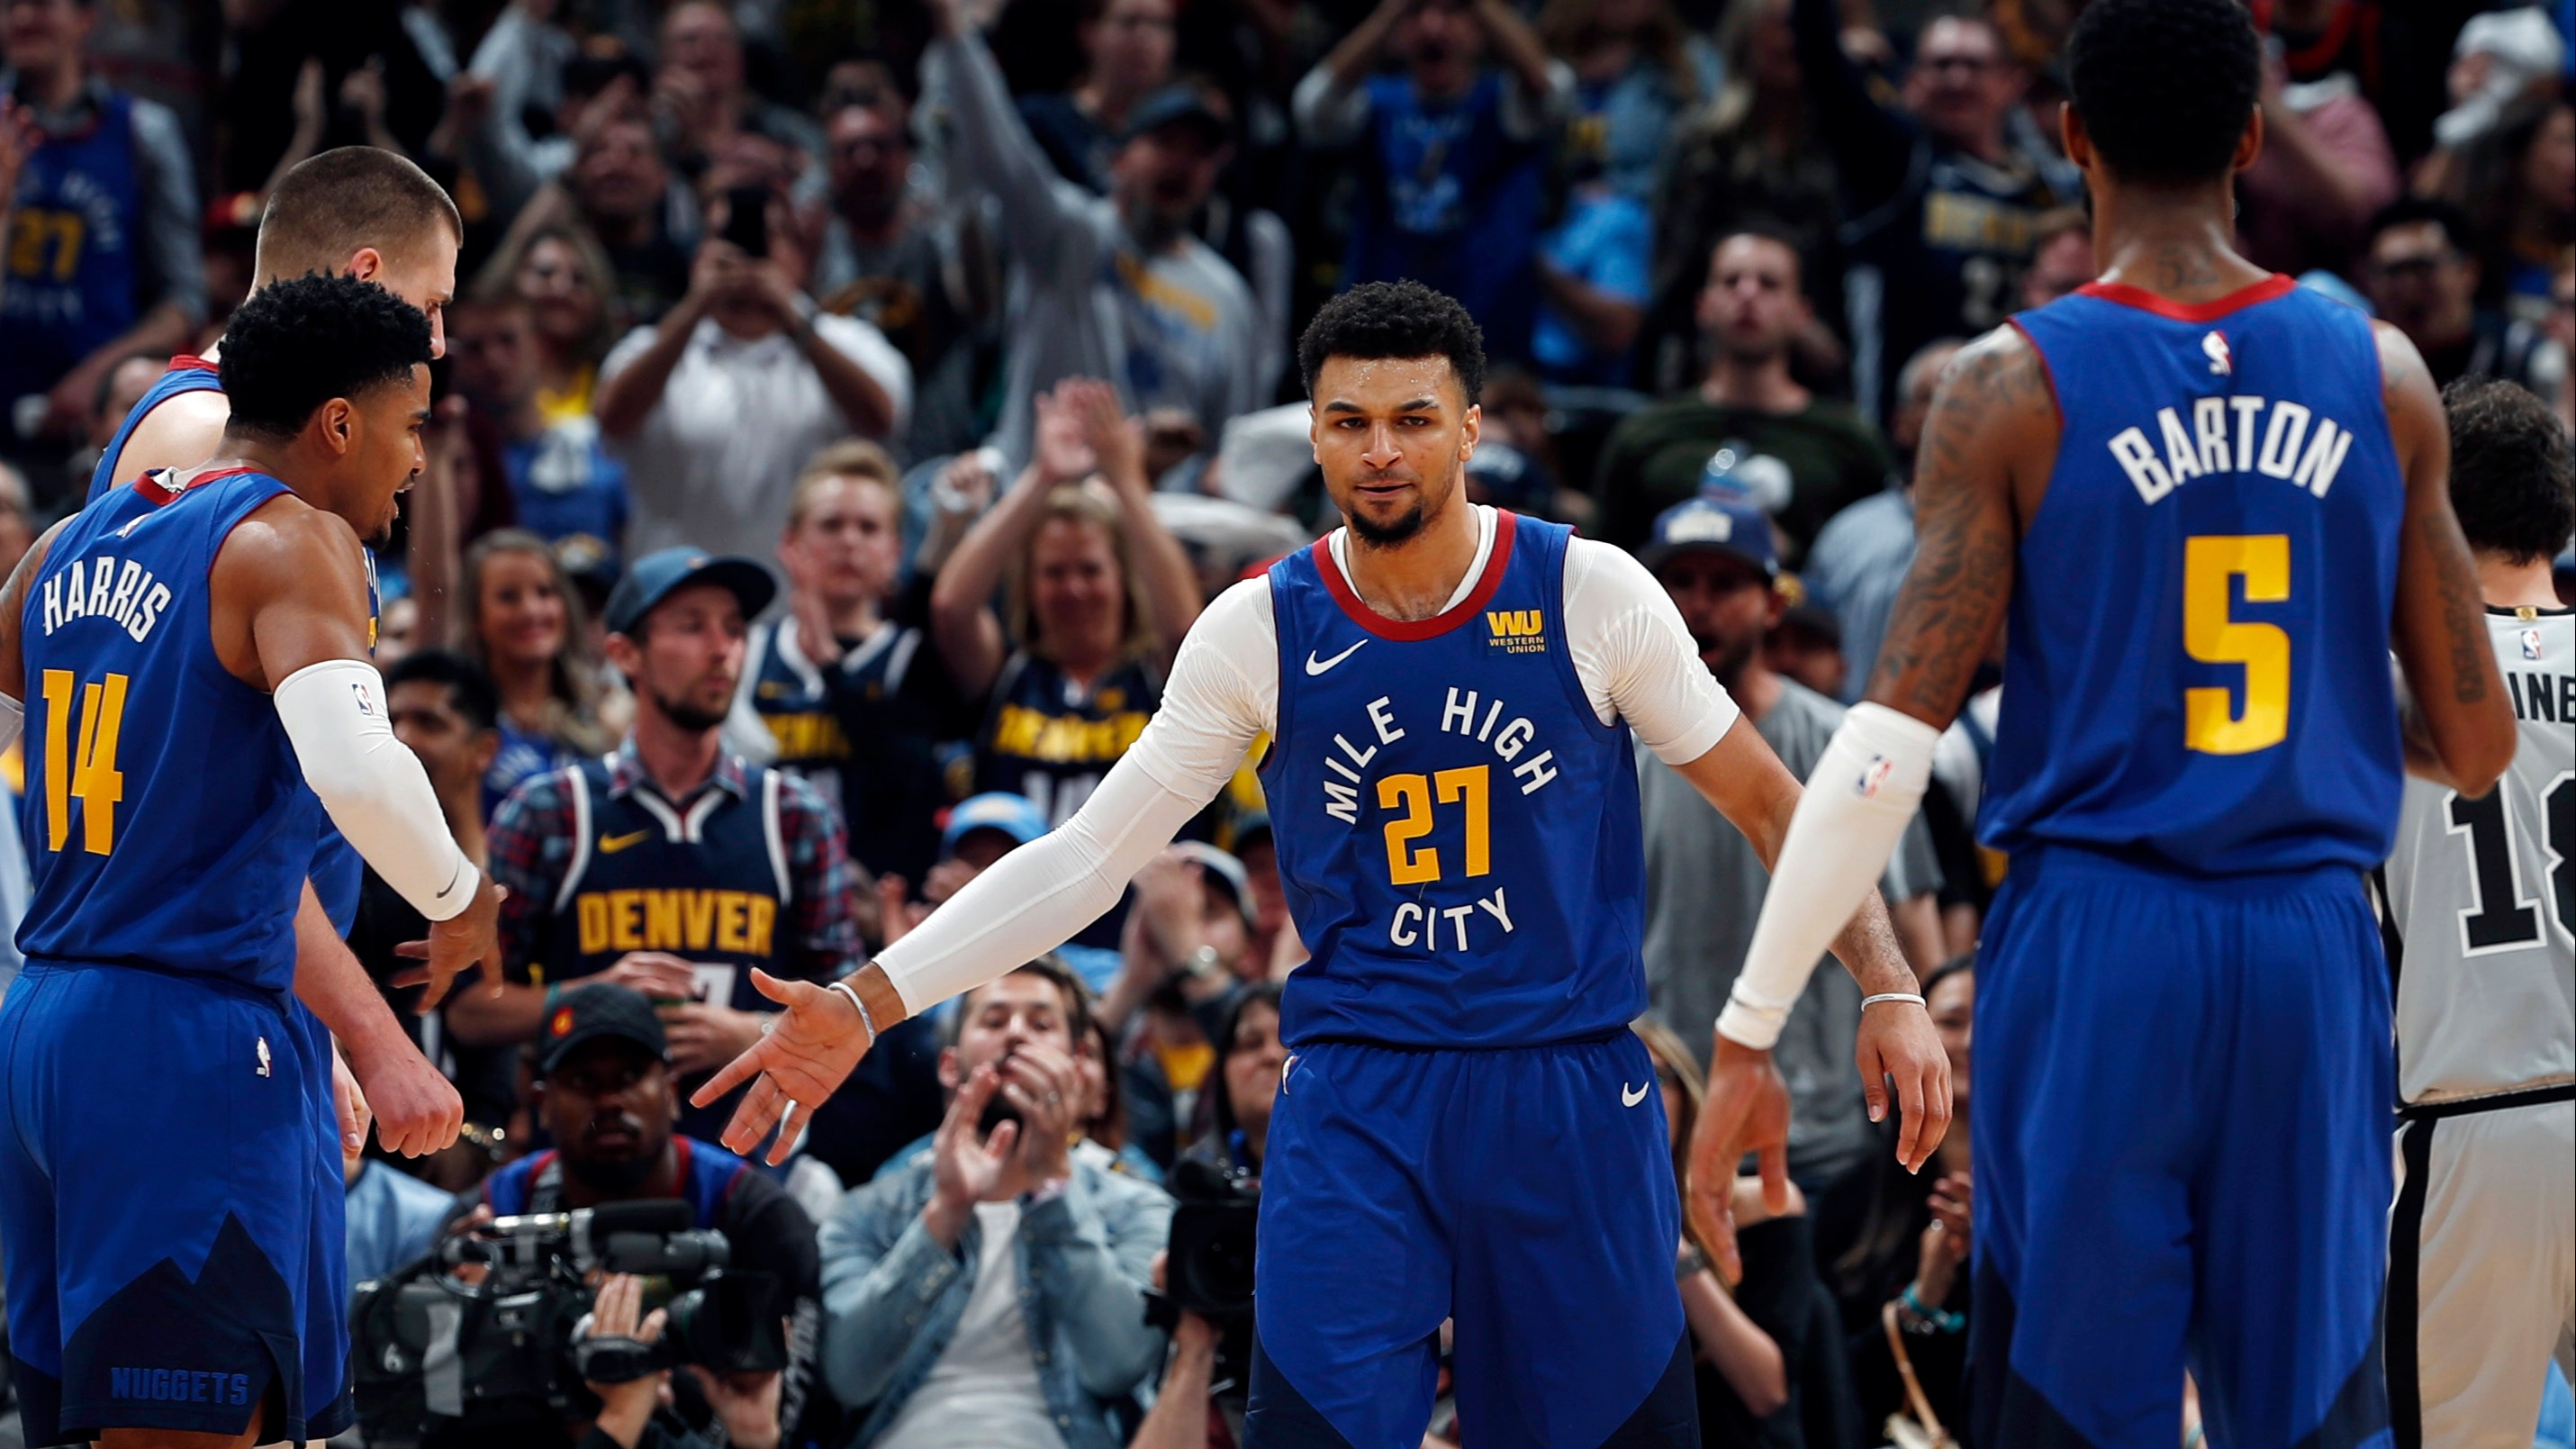 Nba game 7 betting line online sport betting legal